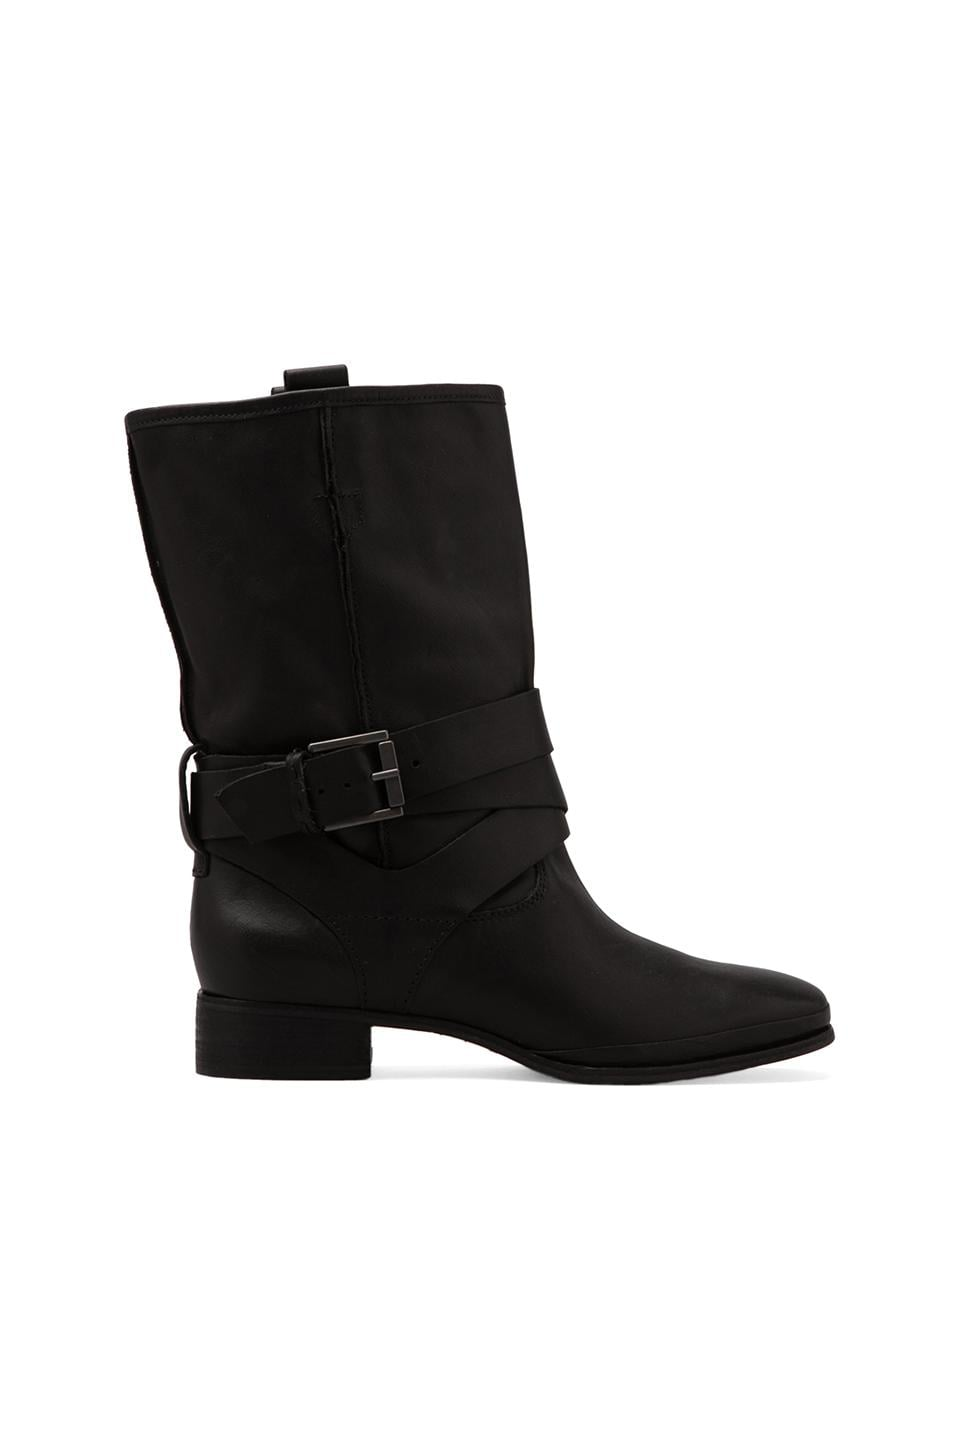 Belle by Sigerson Morrison Who Moto Bootie in Black